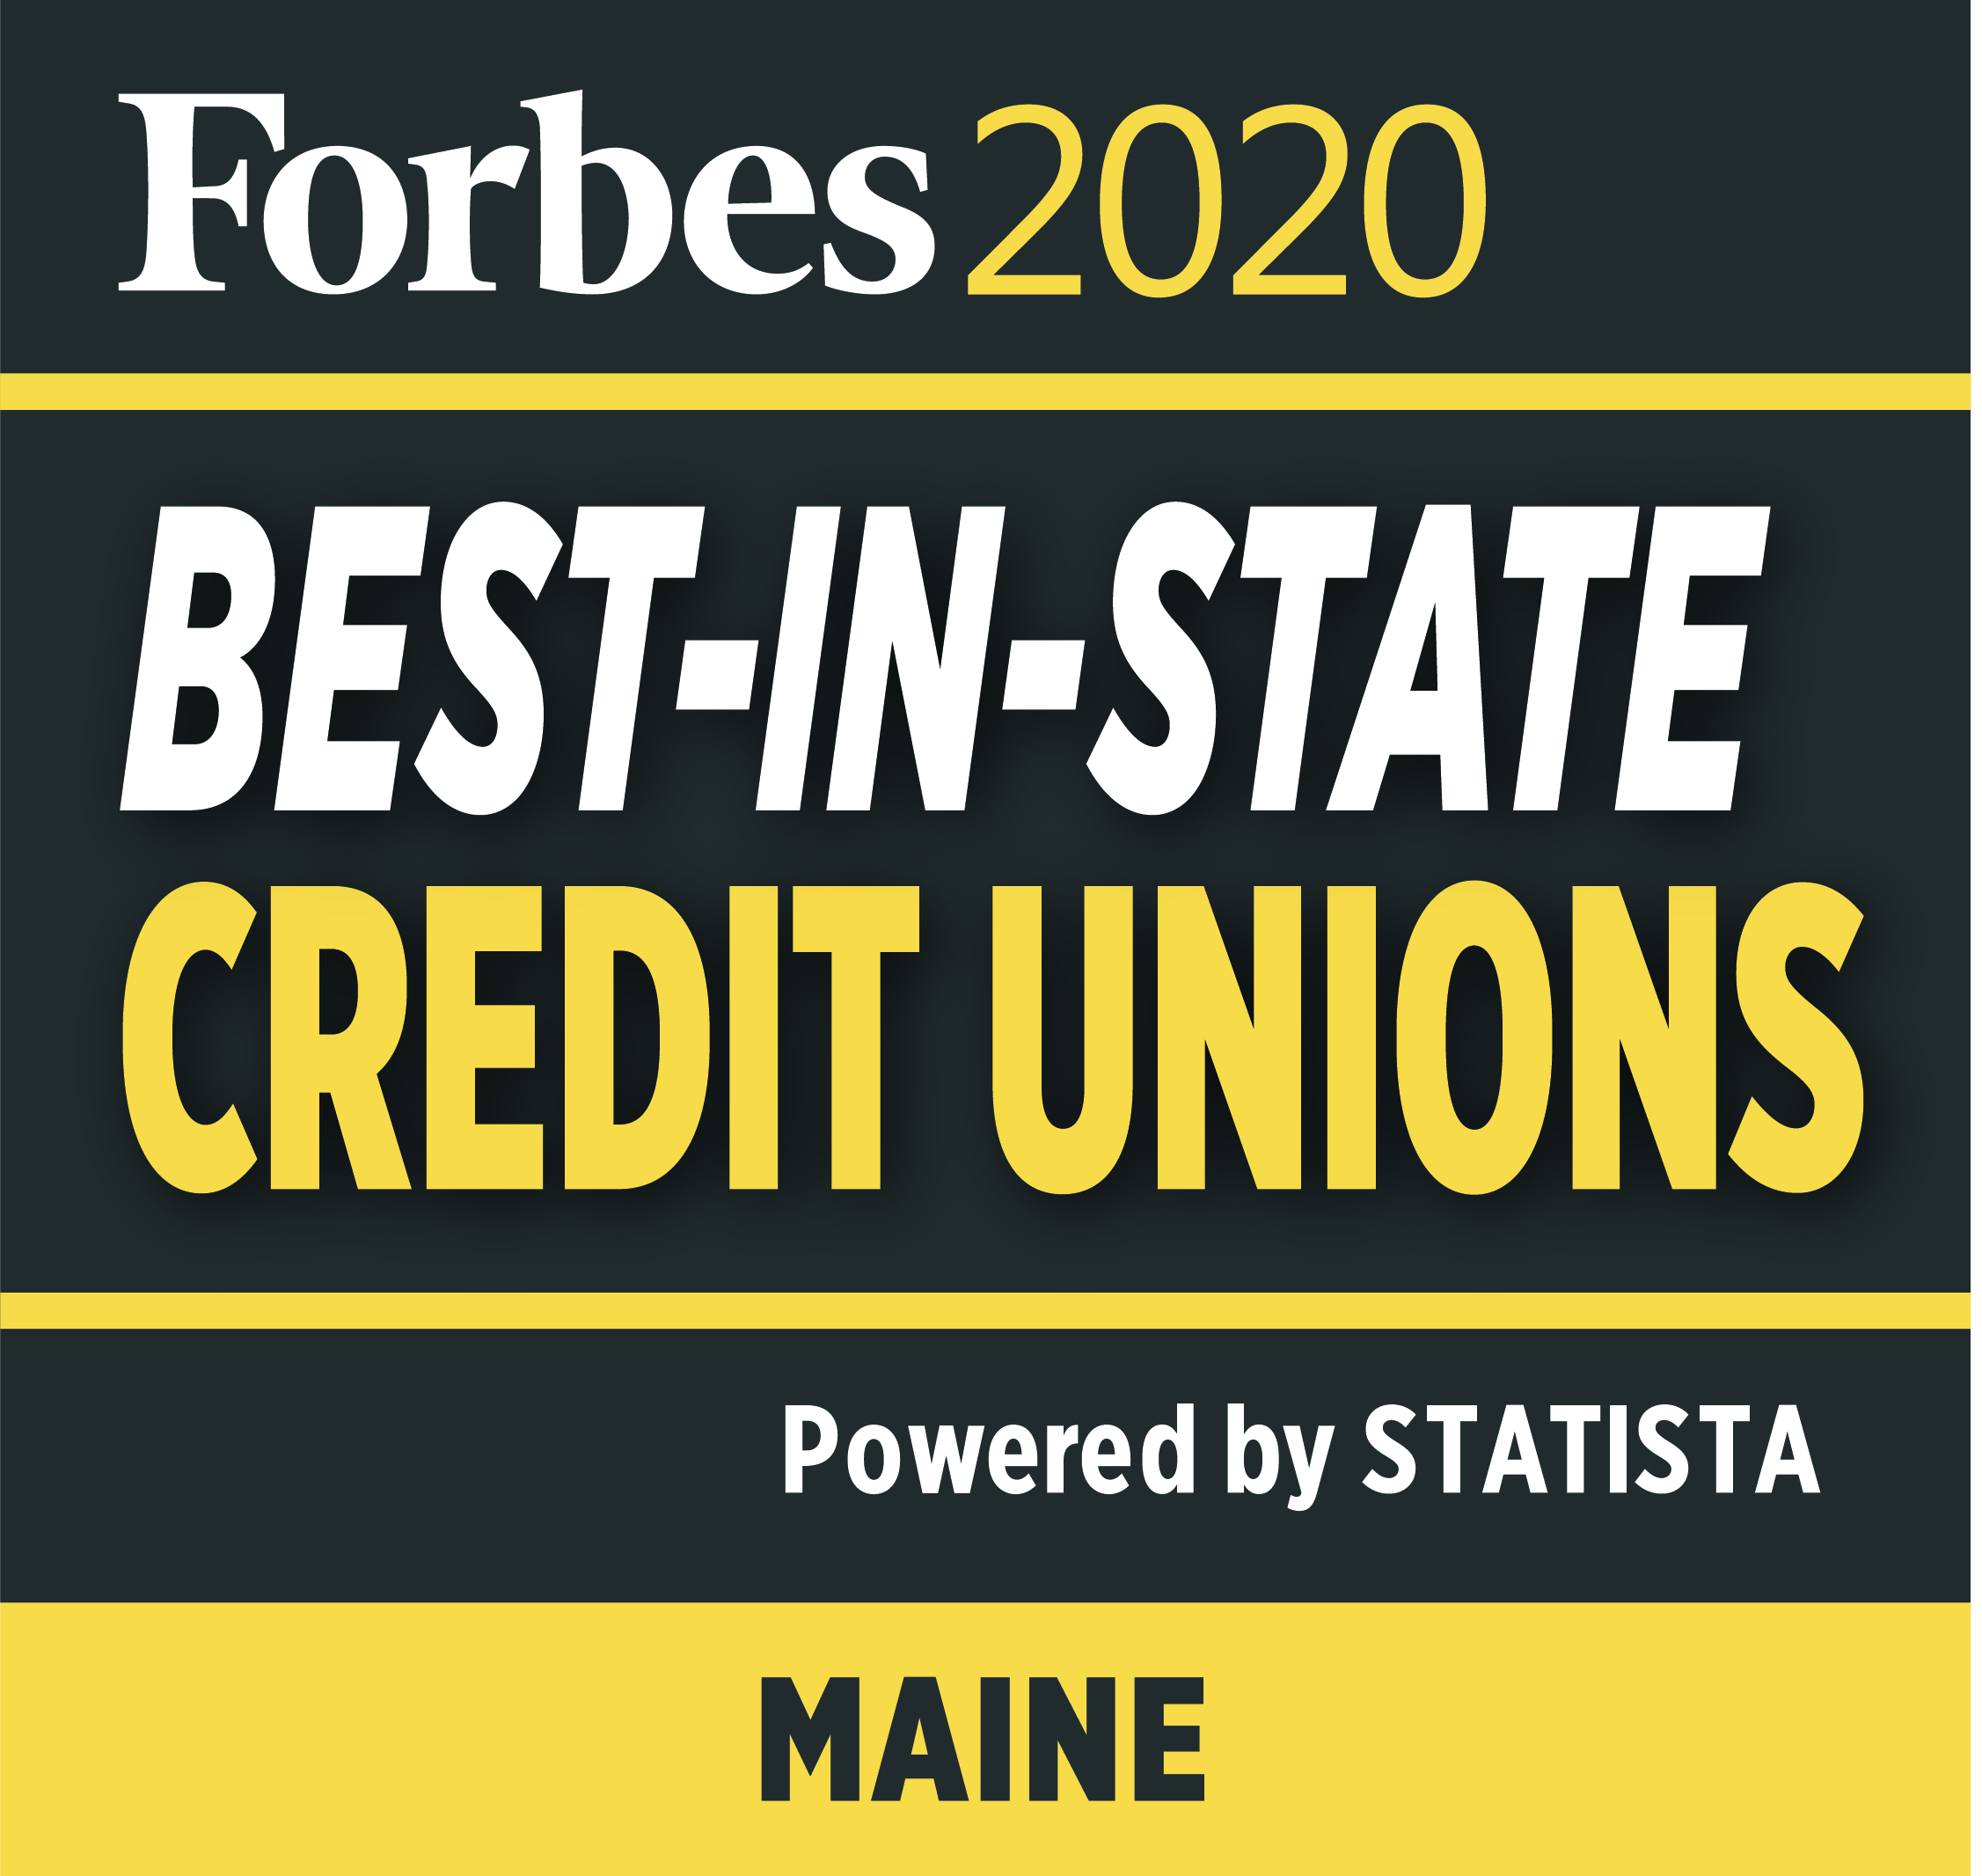 New Dimensions Federal Credit Union Awarded As One Of Forbes' Best-In-State Credit Unions In 2020